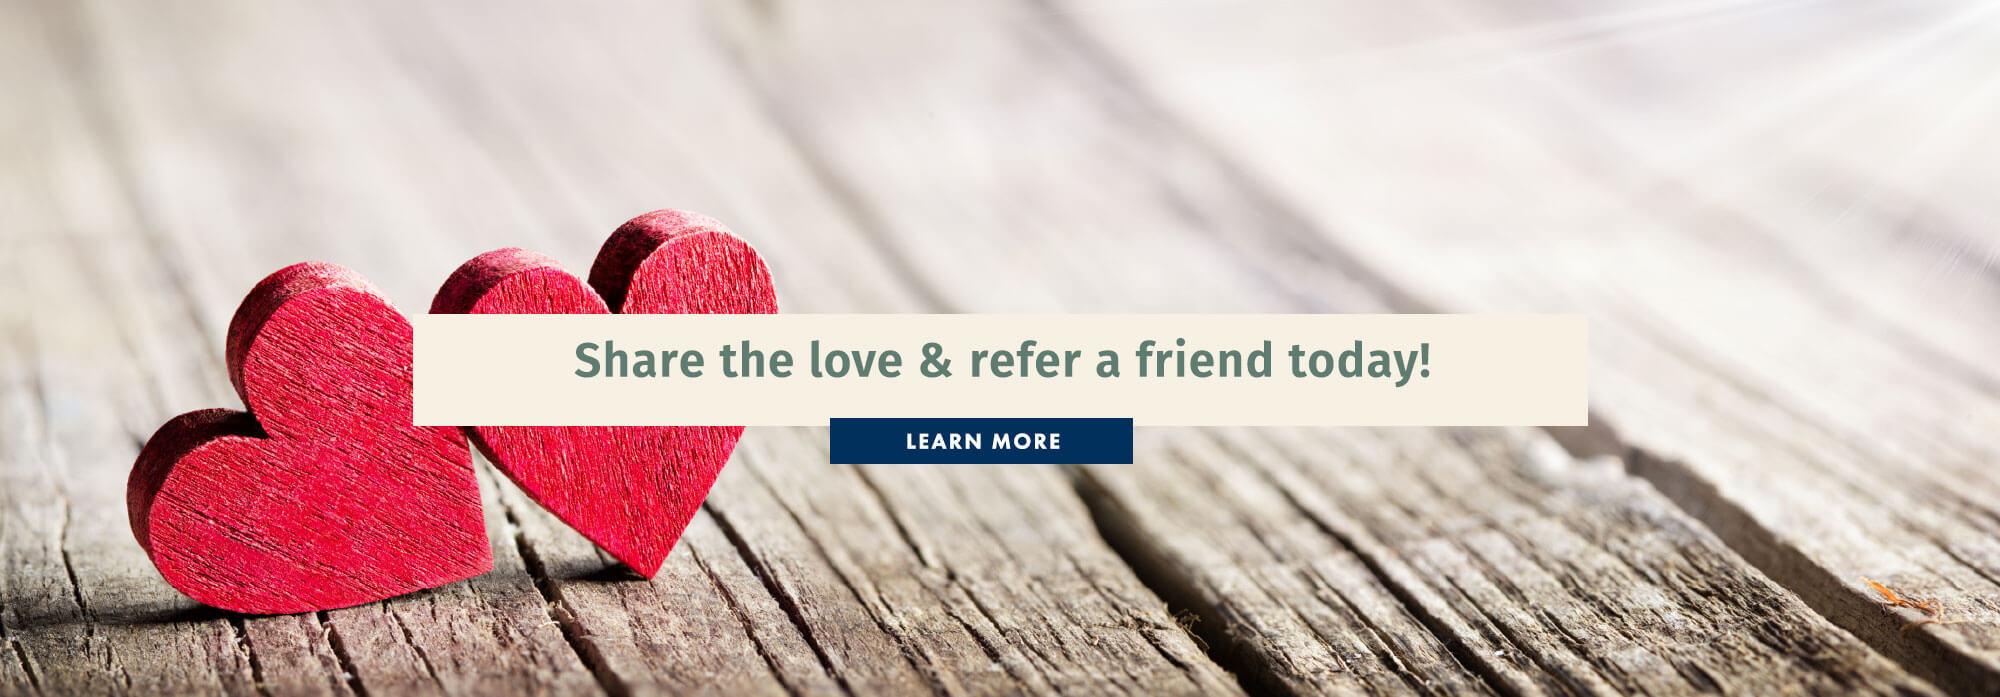 Share the love & refer a friend today!